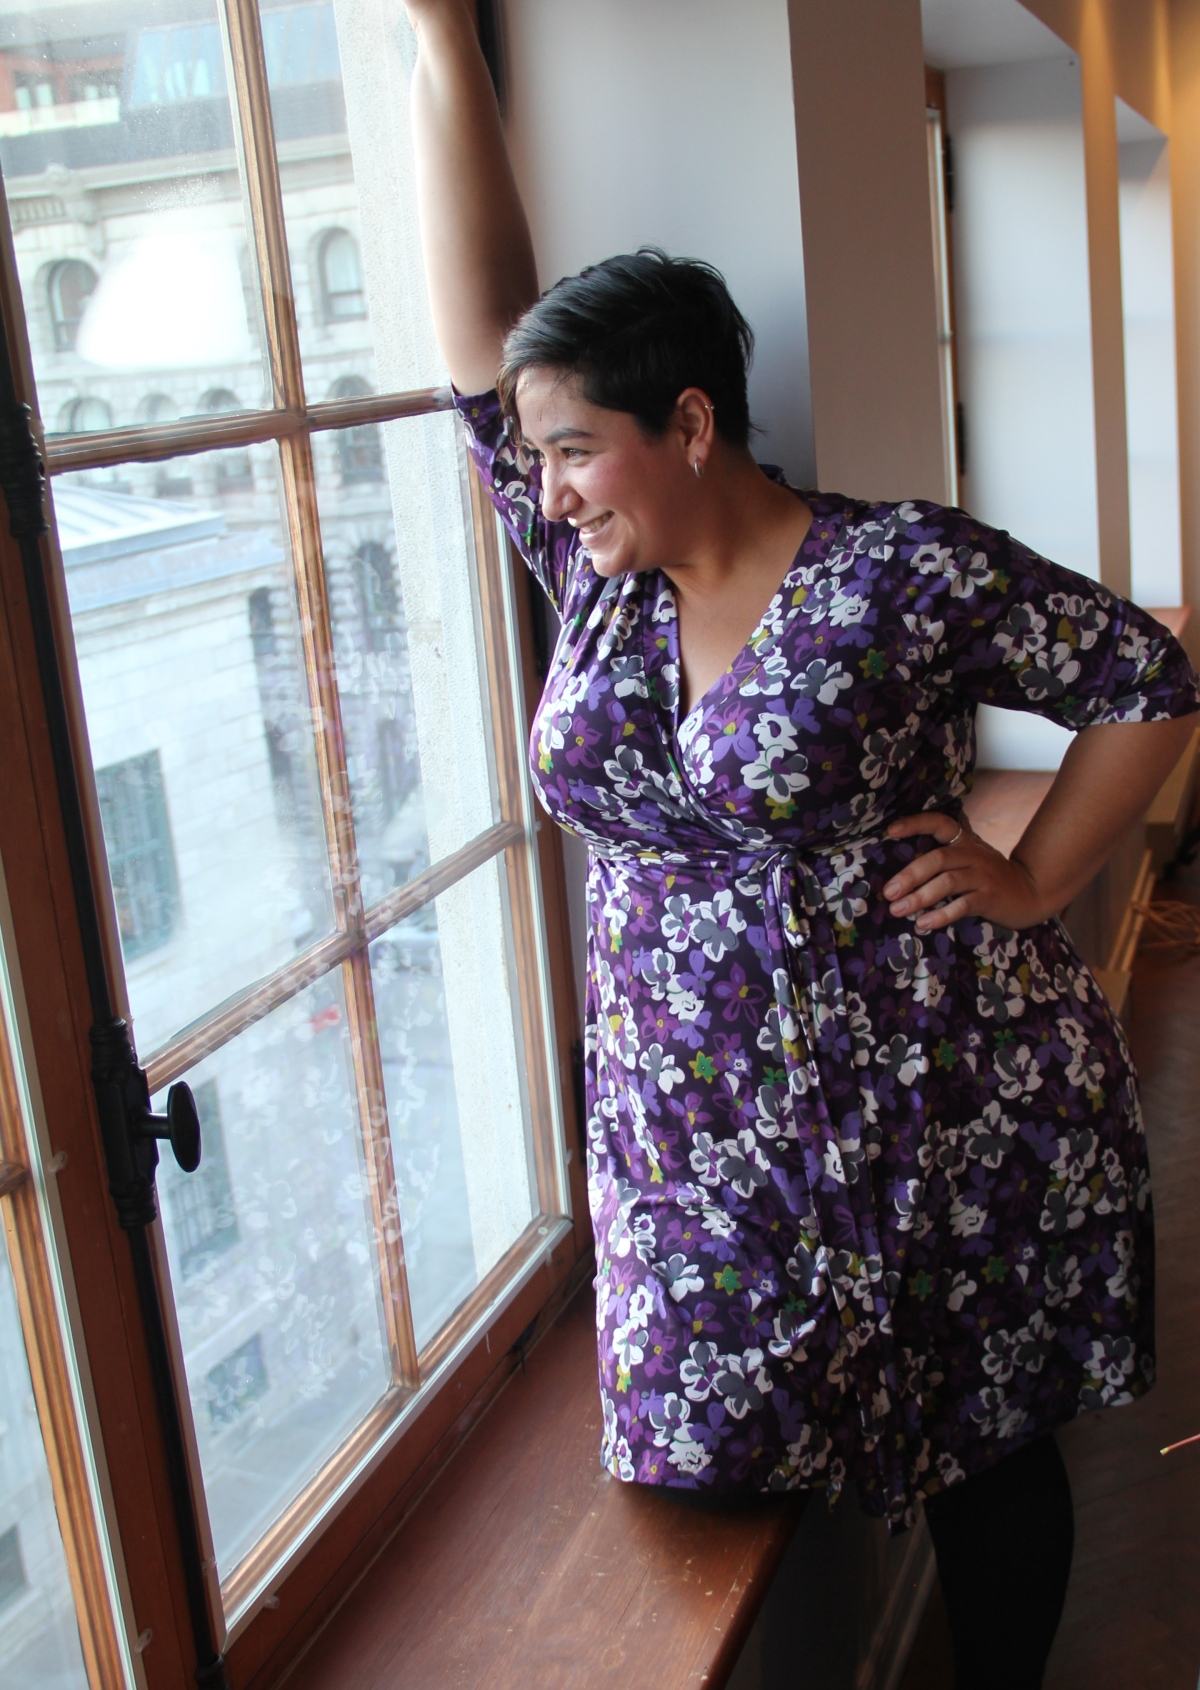 Author in a floral print dress looking out a window